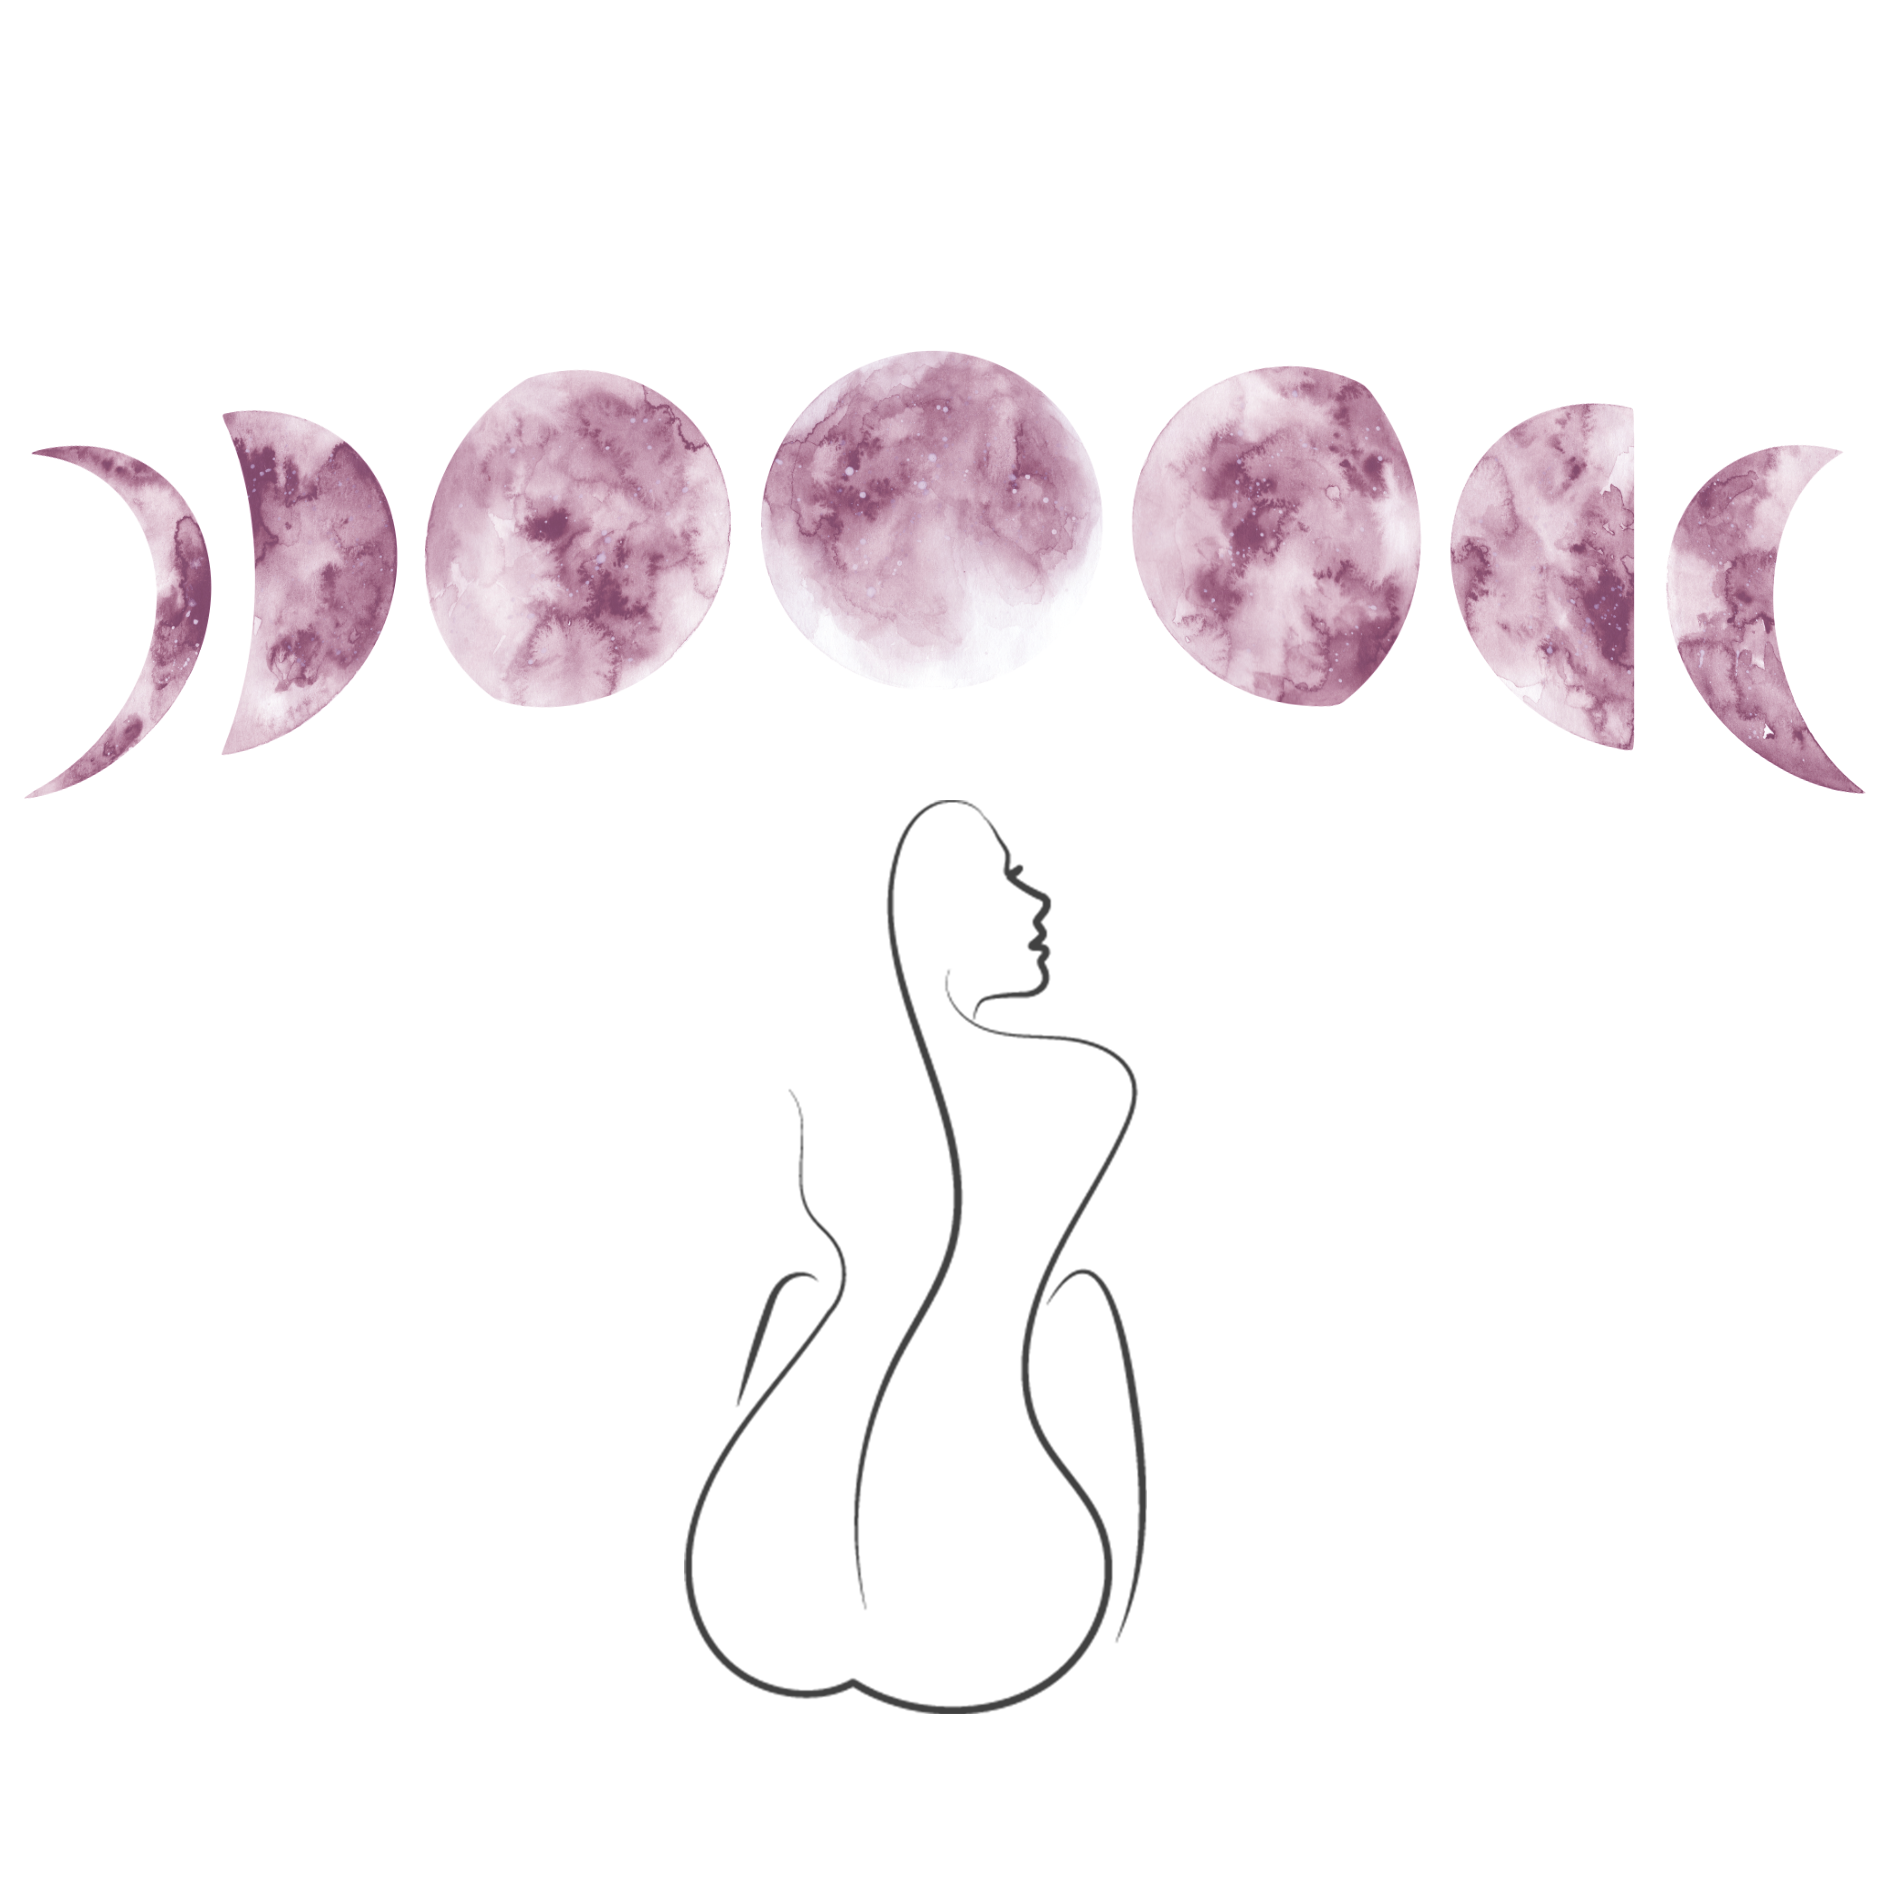 menstrual mapping image